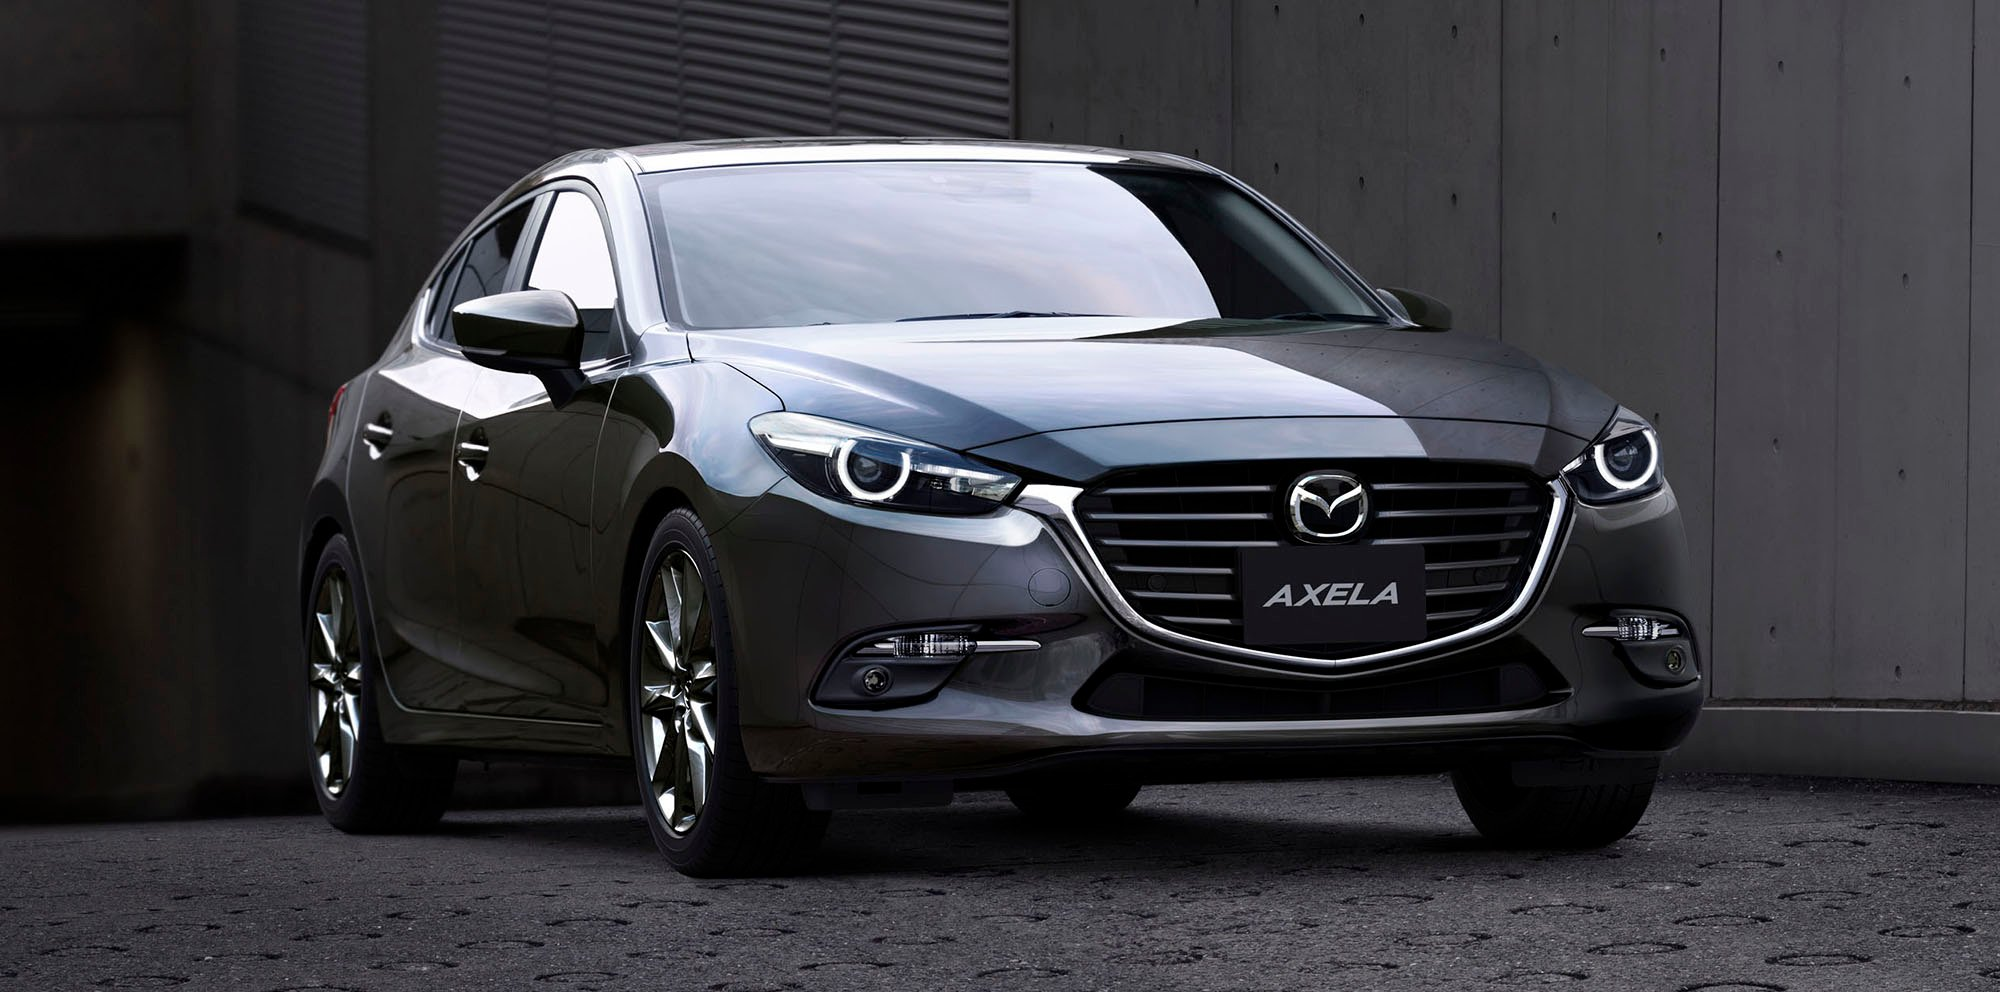 2016 Mazda 3 facelift goes official, Australian debut coming soon ...